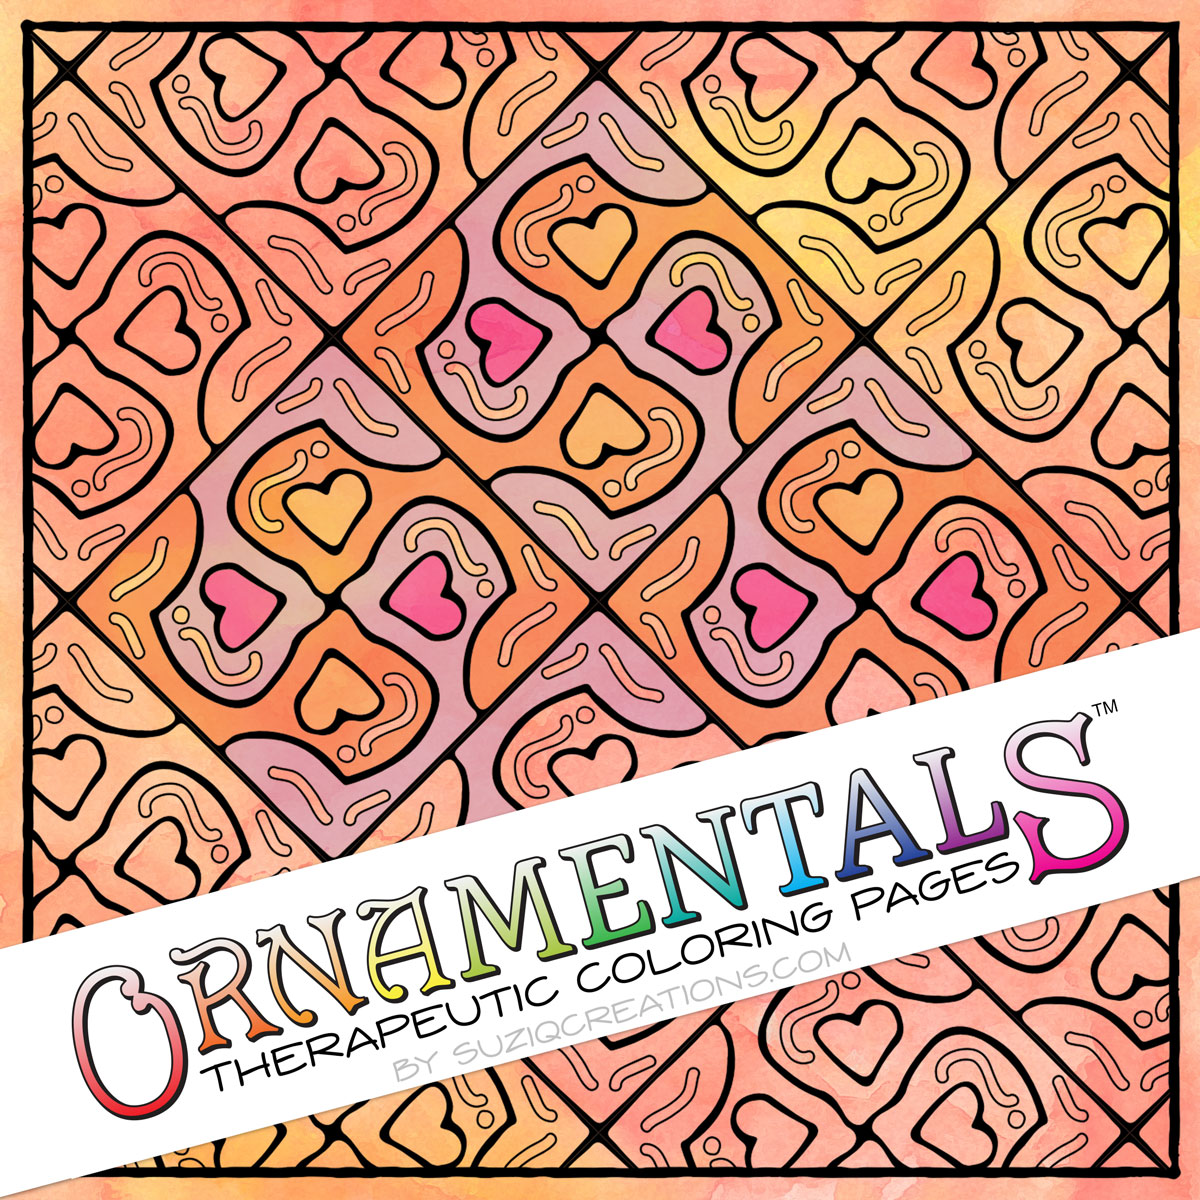 A Lovely Puzzle OrnaMENTALs Coloring Page Design #0046 Preview